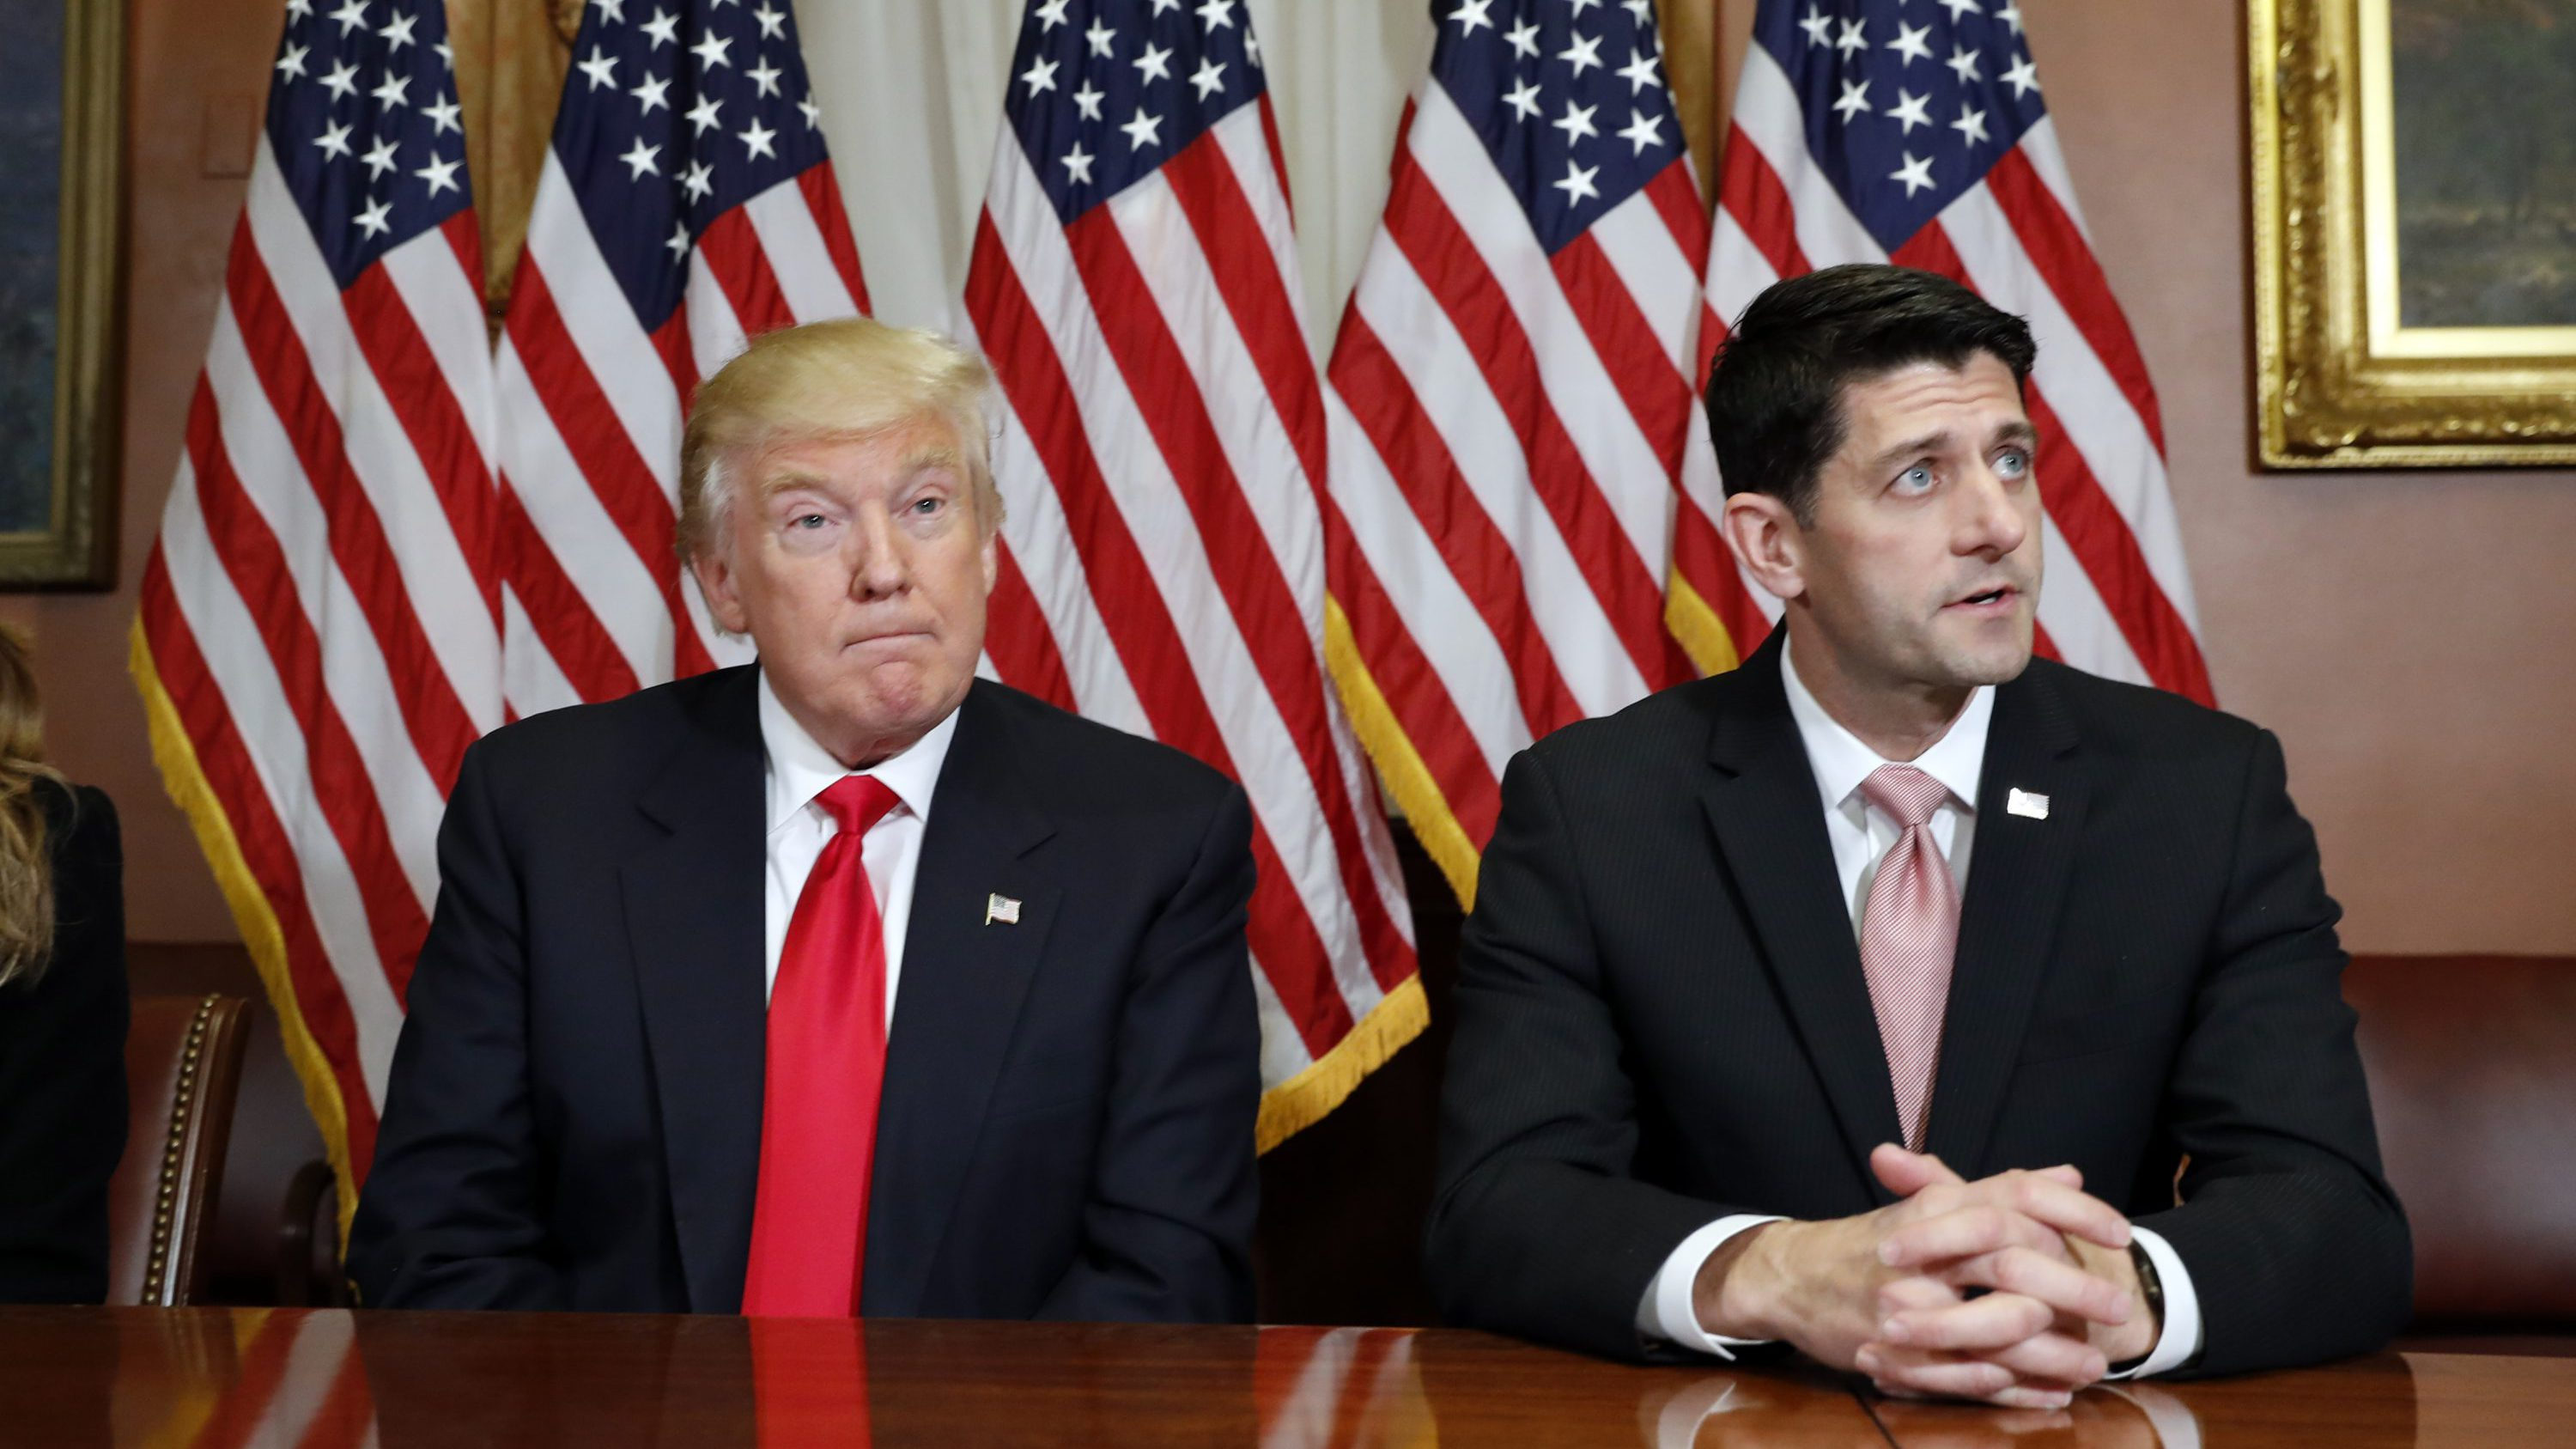 President-elect Donald Trump is seen with House Speaker Paul Ryan of Wis. on Capitol Hill in Washington, Thursday, Nov. 10, 2016. (AP Photo/Alex Brandon)